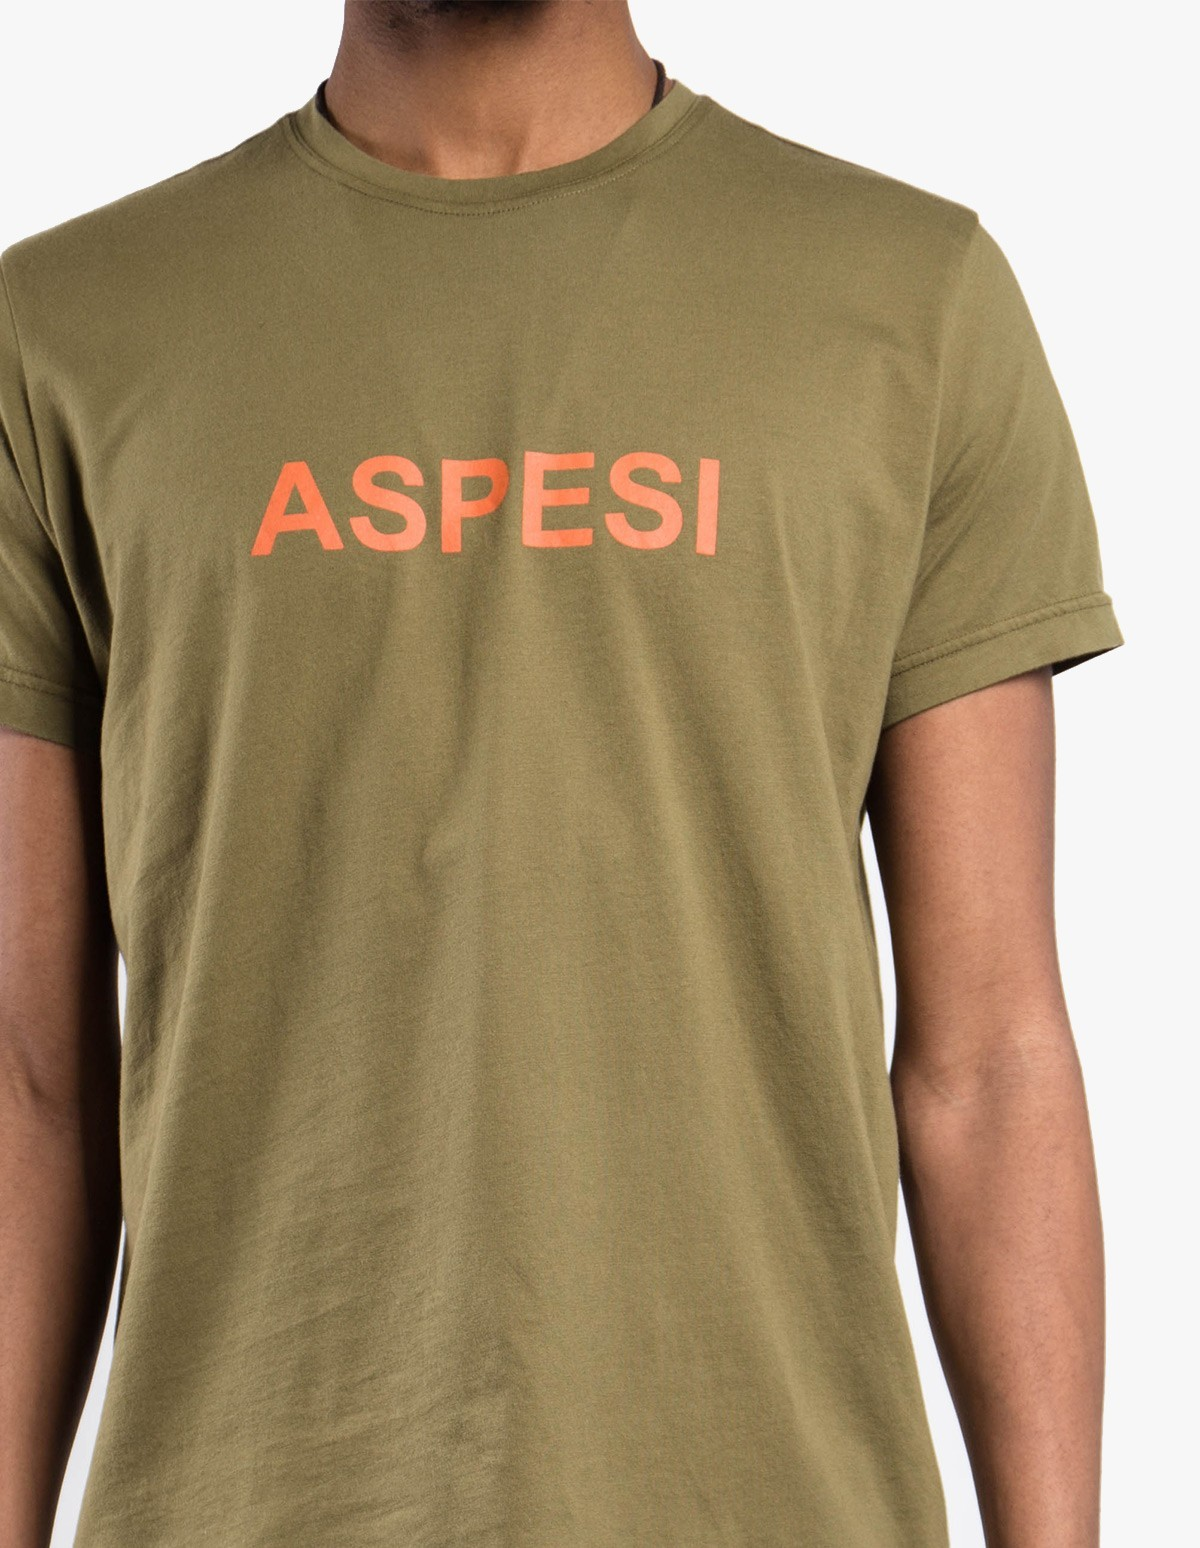 Aspesi T-Shirt Aspesi AY21 in Green